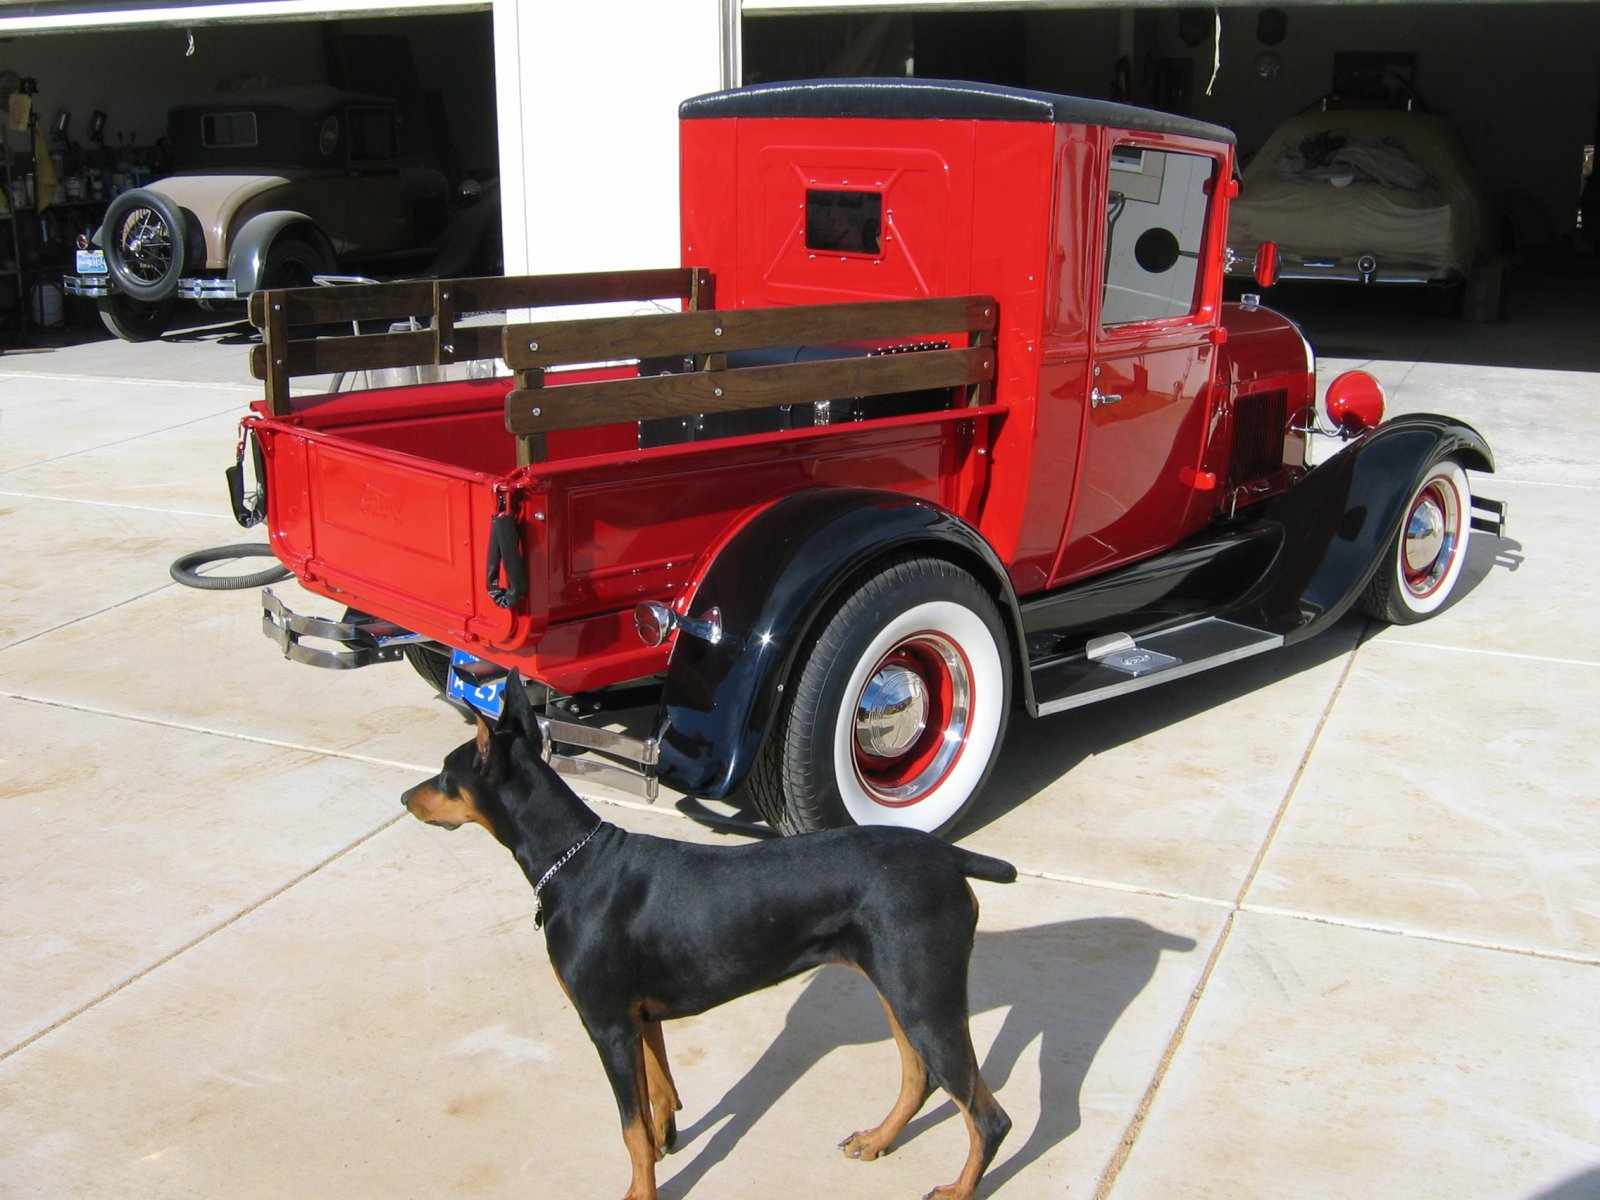 Hot Rods Shop Truck Sideboard Pics And Design Ideas The H A M B